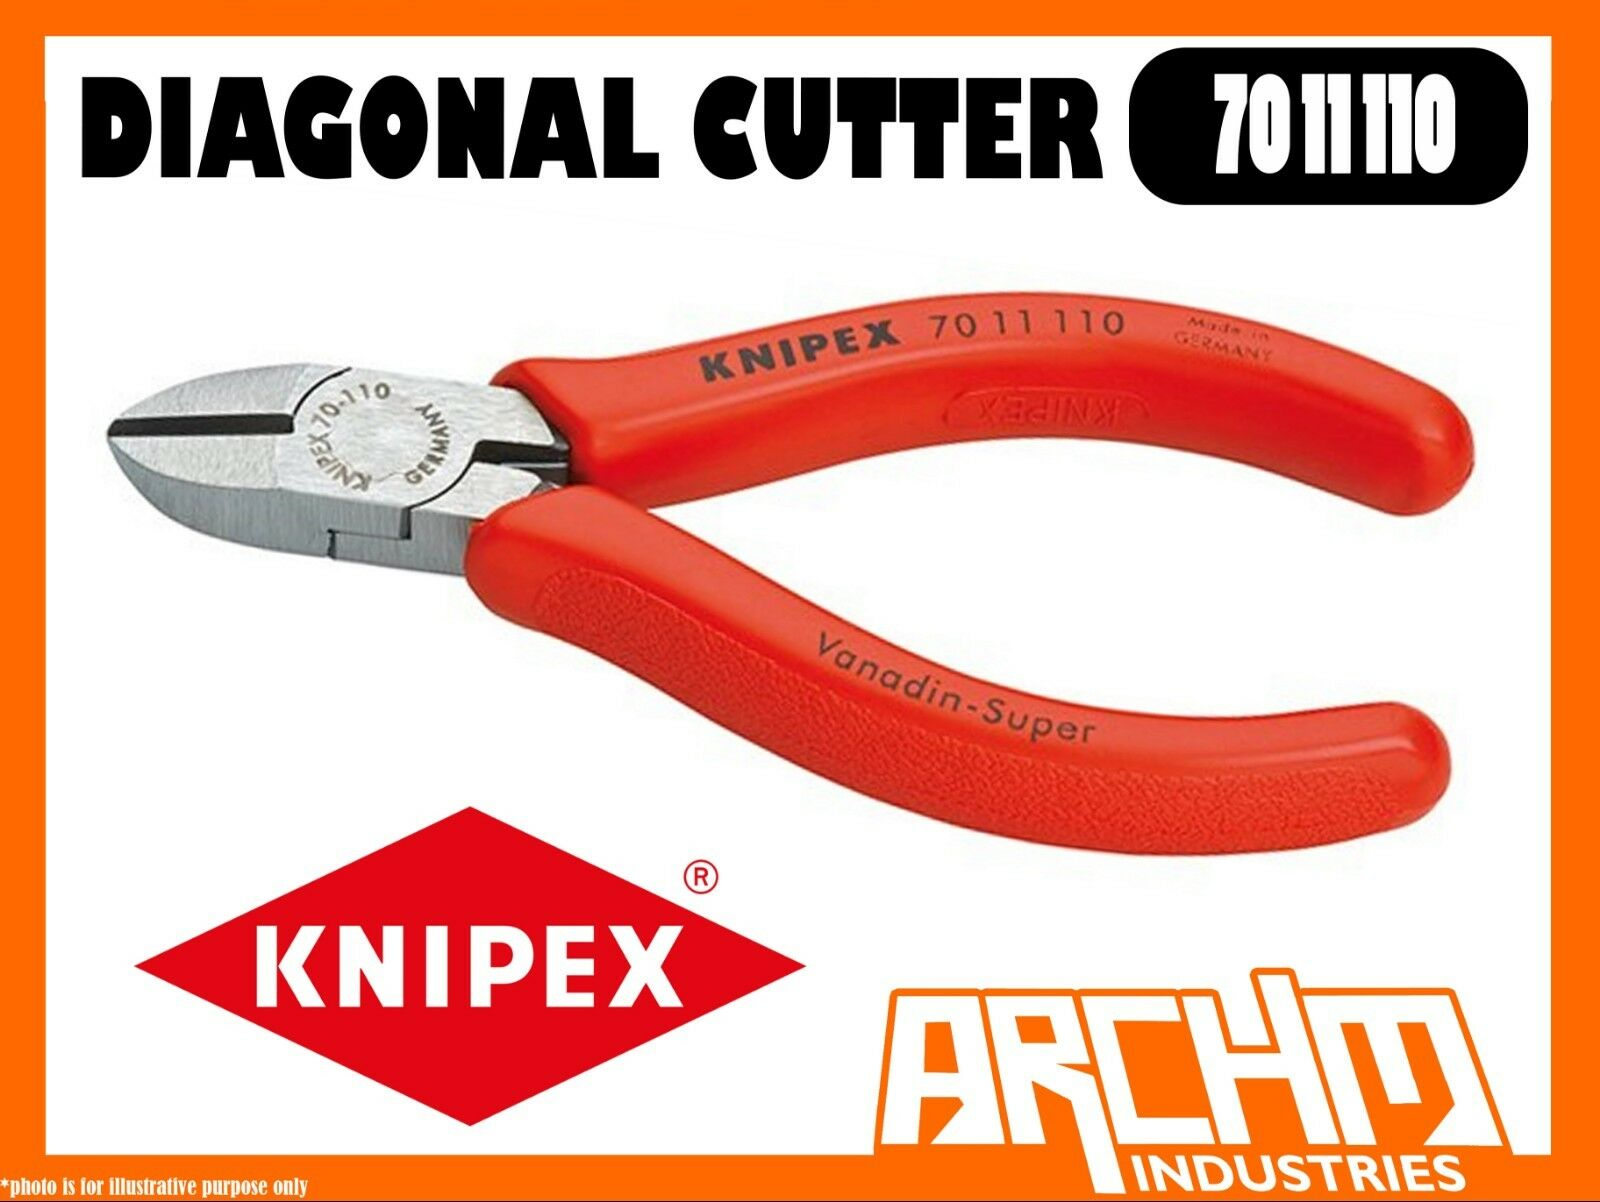 KNIPEX 7011110  - DIAGONAL CUTTER - 110MM - CUTTING EDGES HARDENED PRECISION